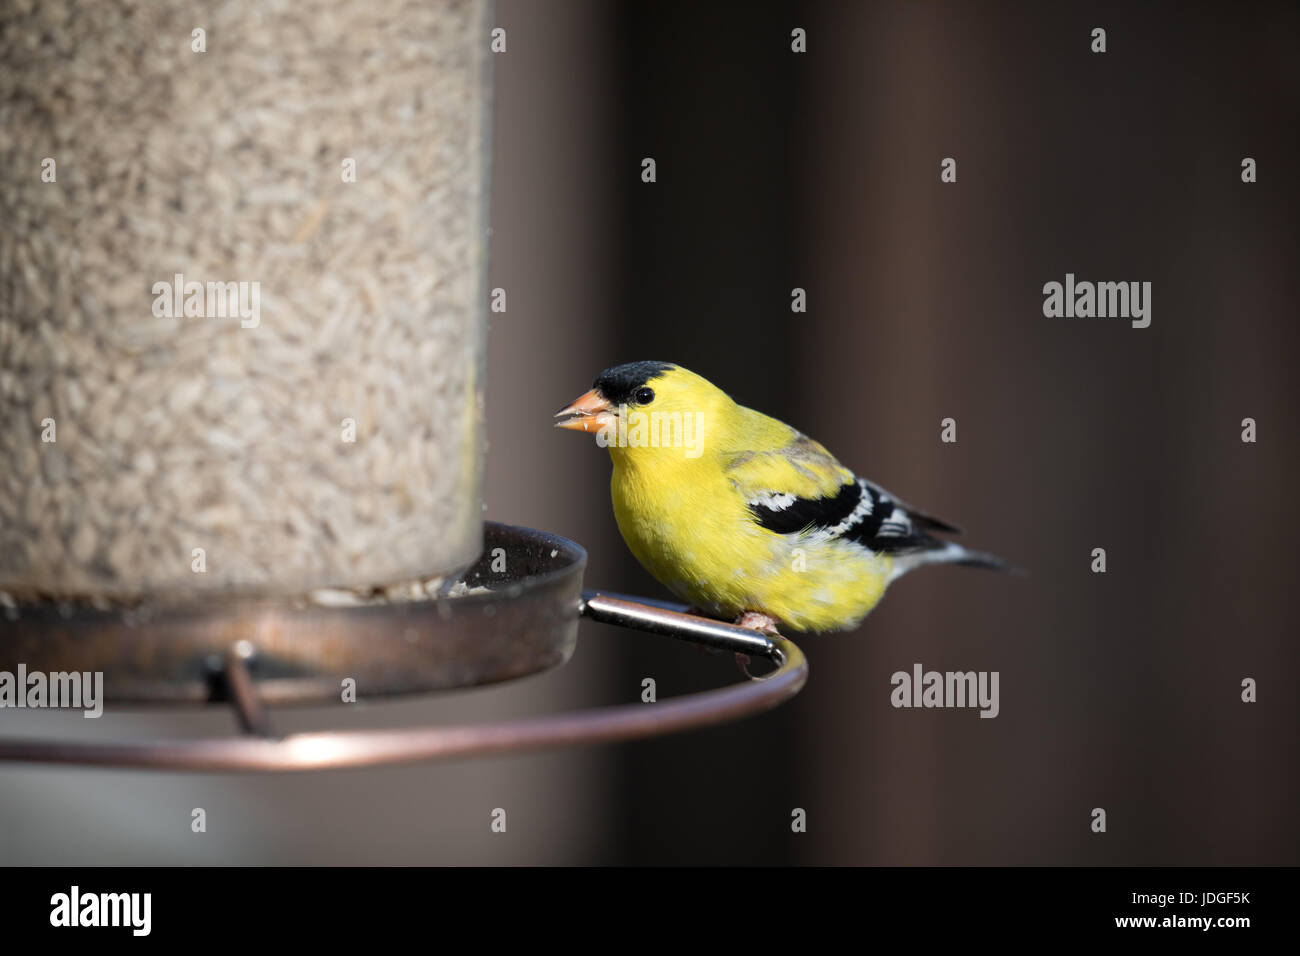 A male American Goldfinch feeds at a backyard bird feeder. - Stock Image